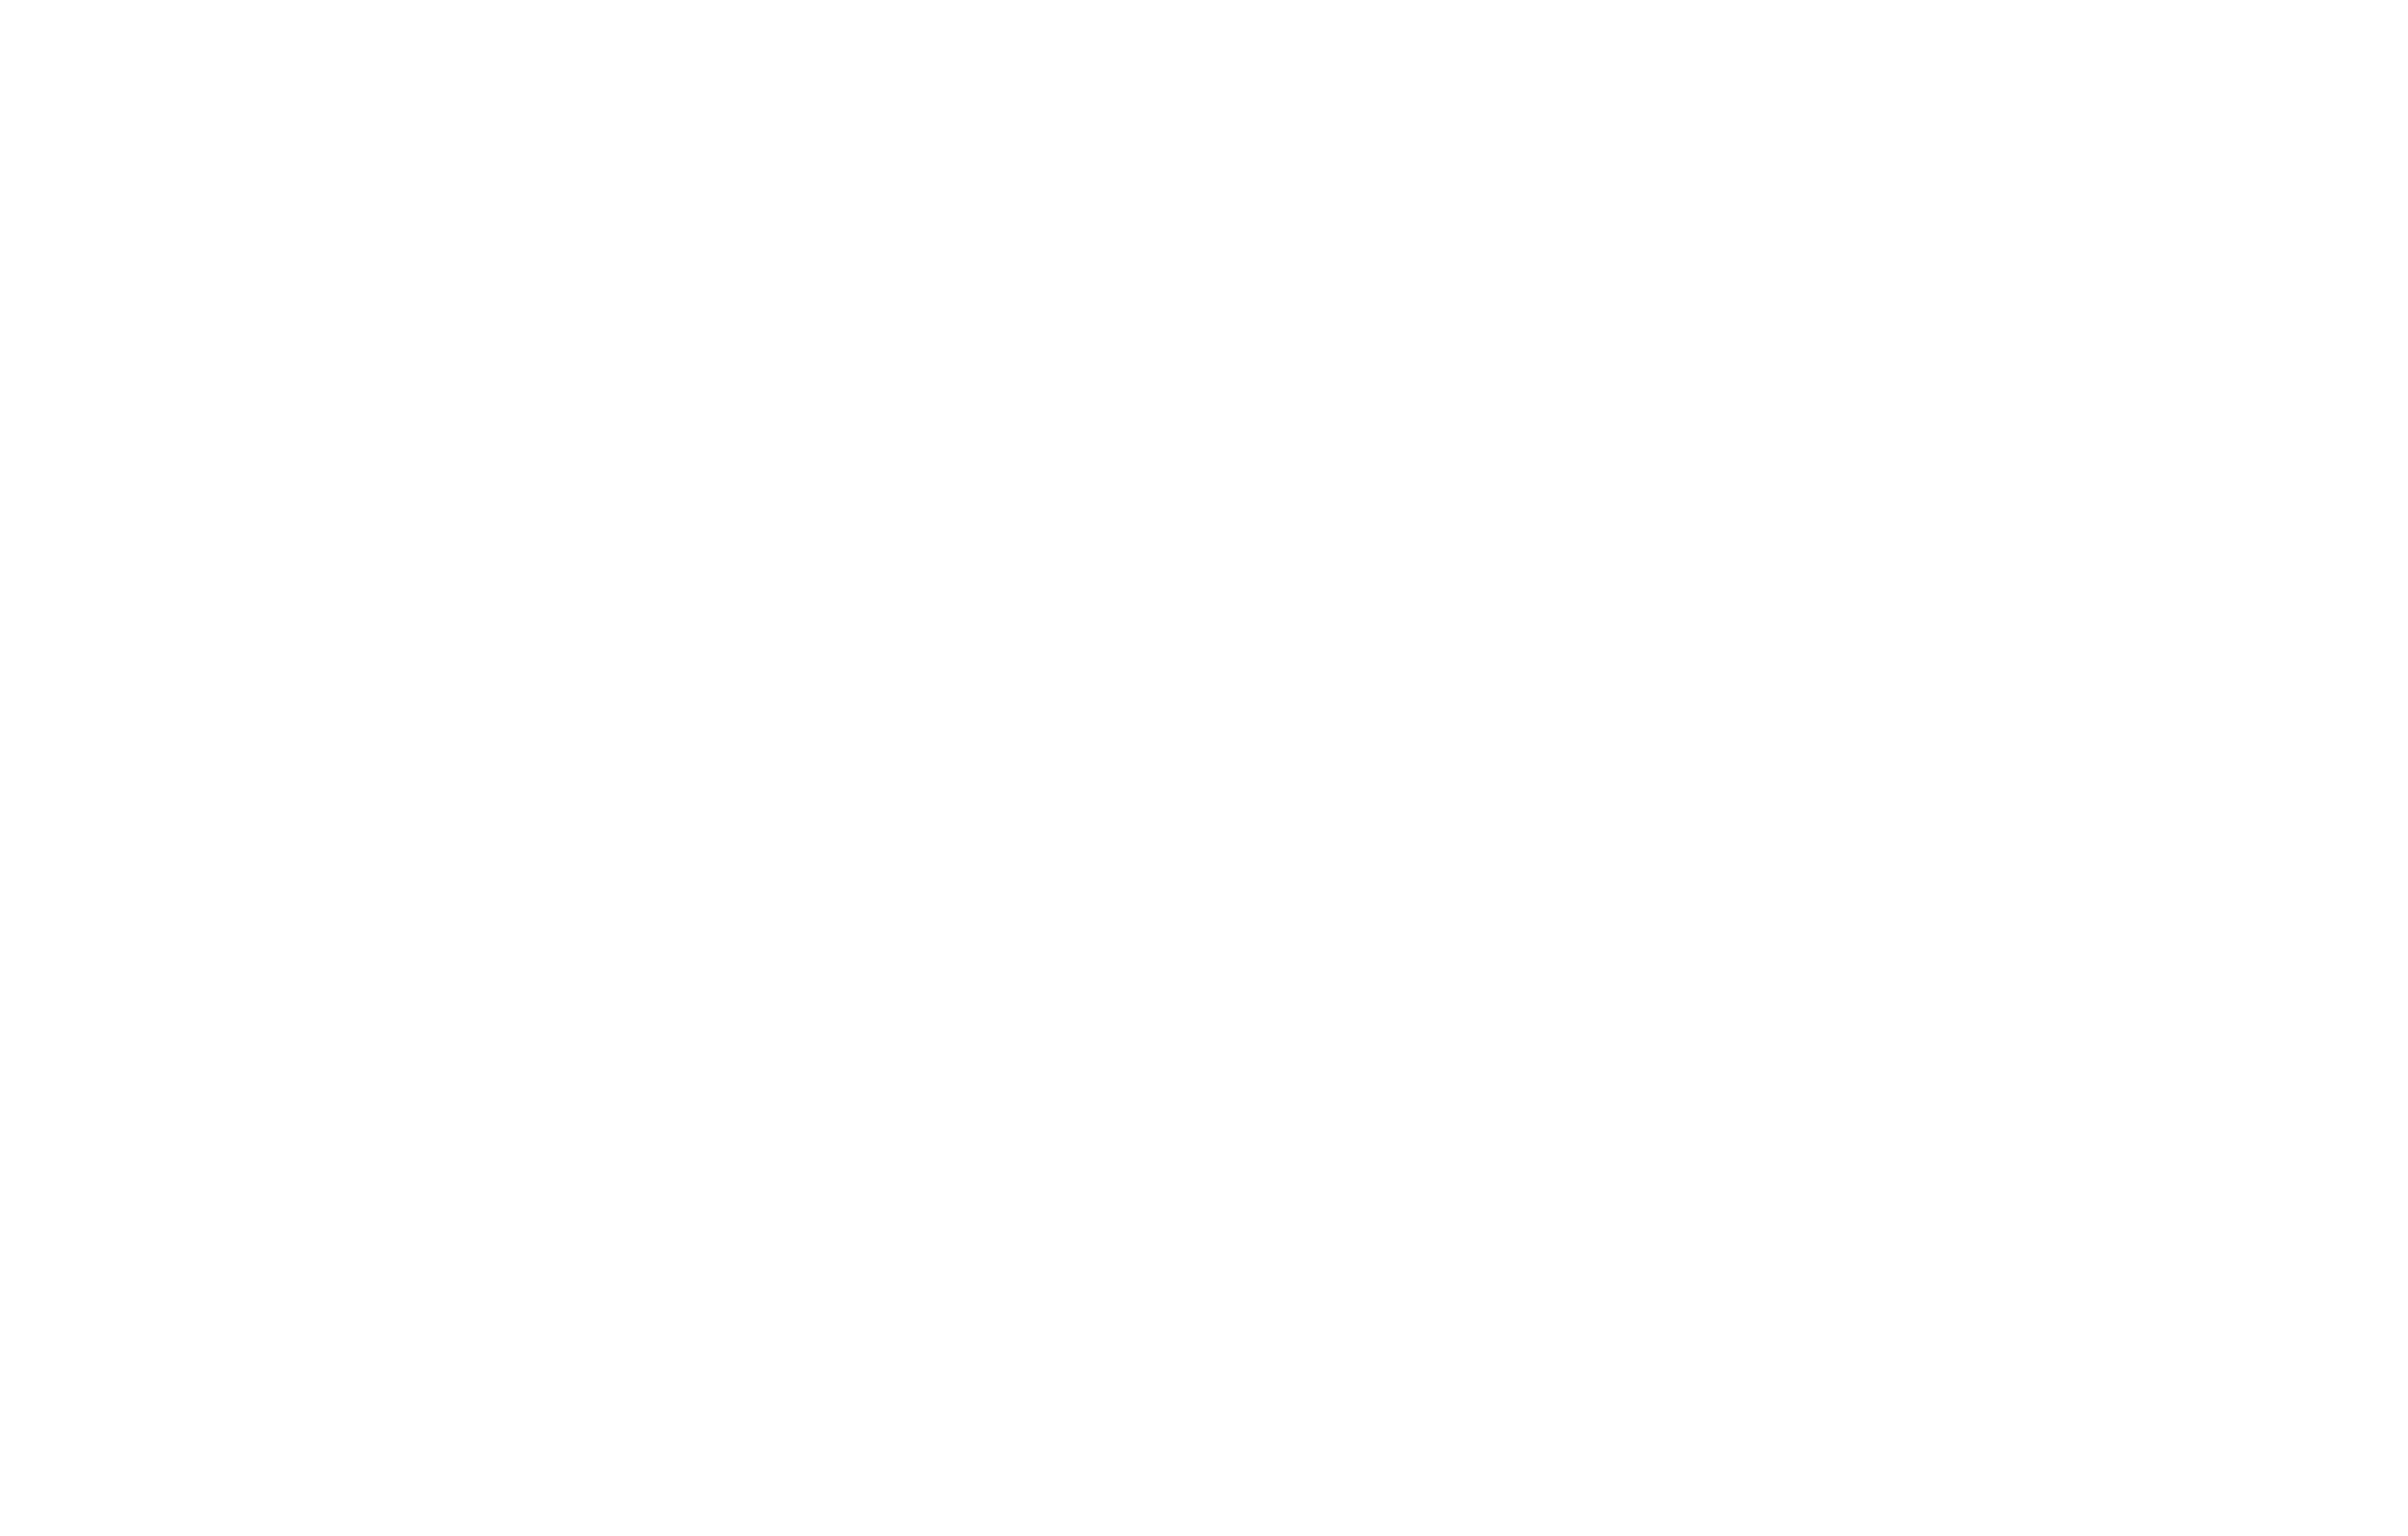 doscuiners platets i postres sl